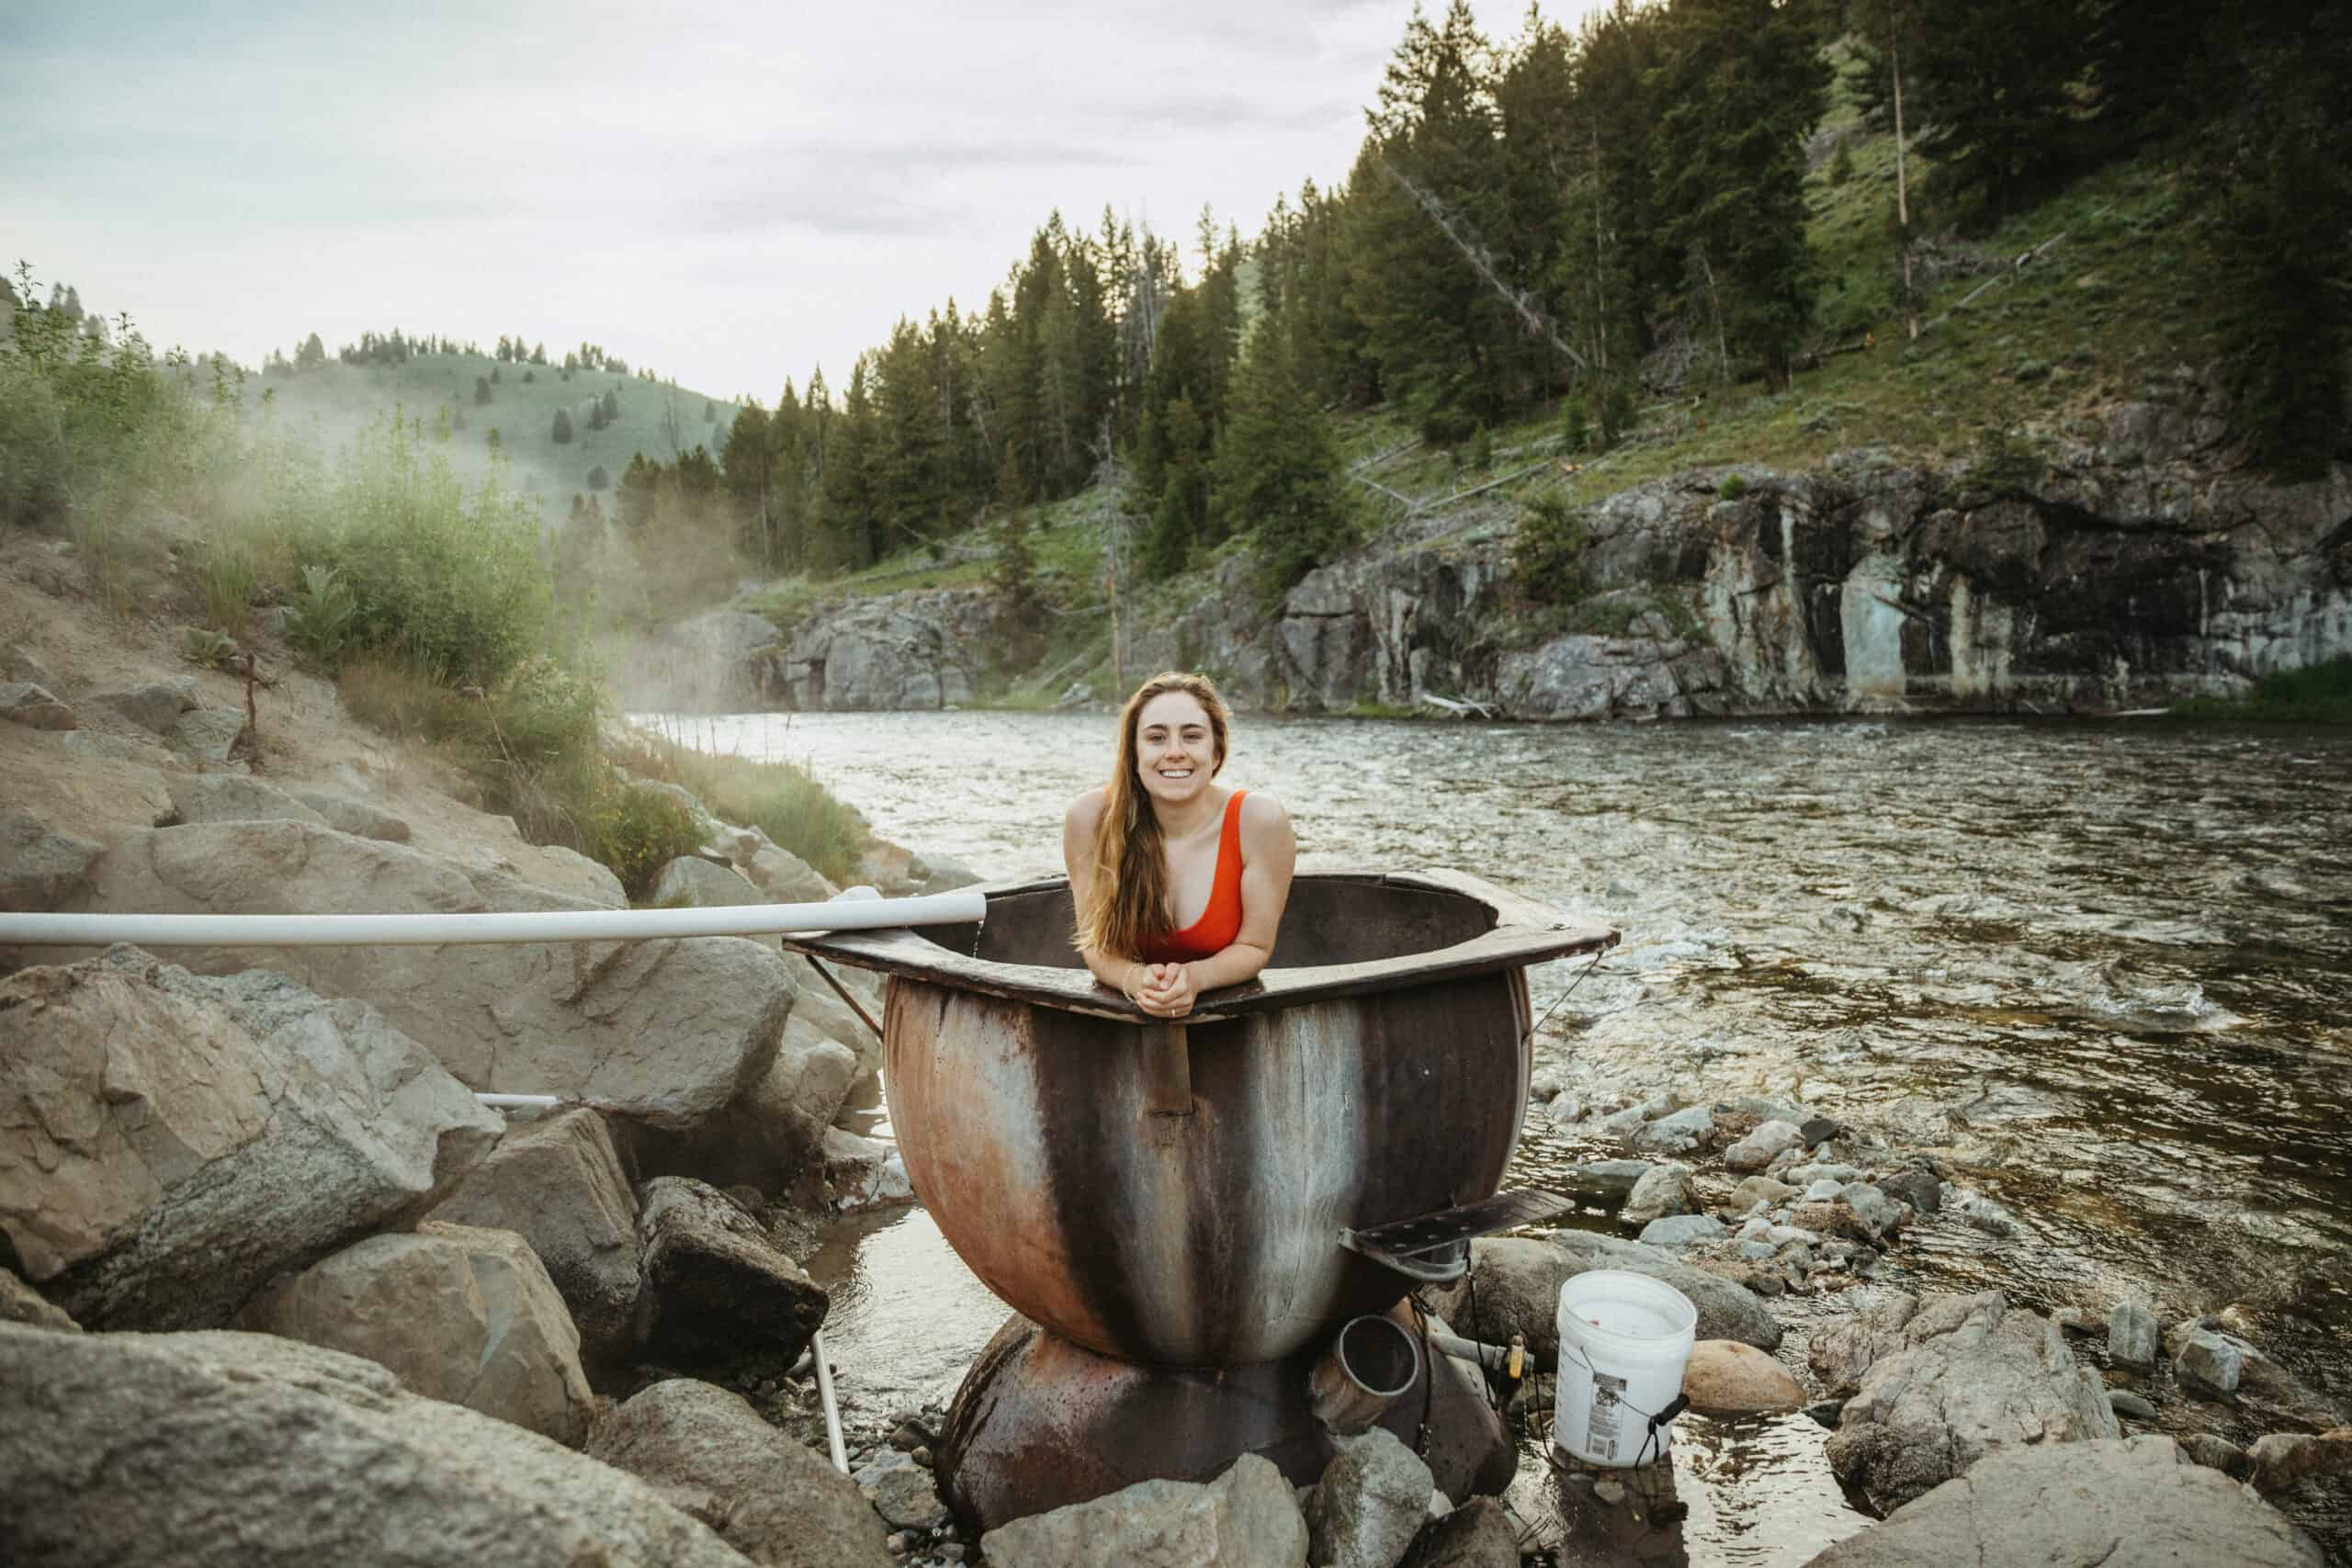 Boat Box Hot Springs (Exactly How To Get There + Tips For A Solo Soak!)